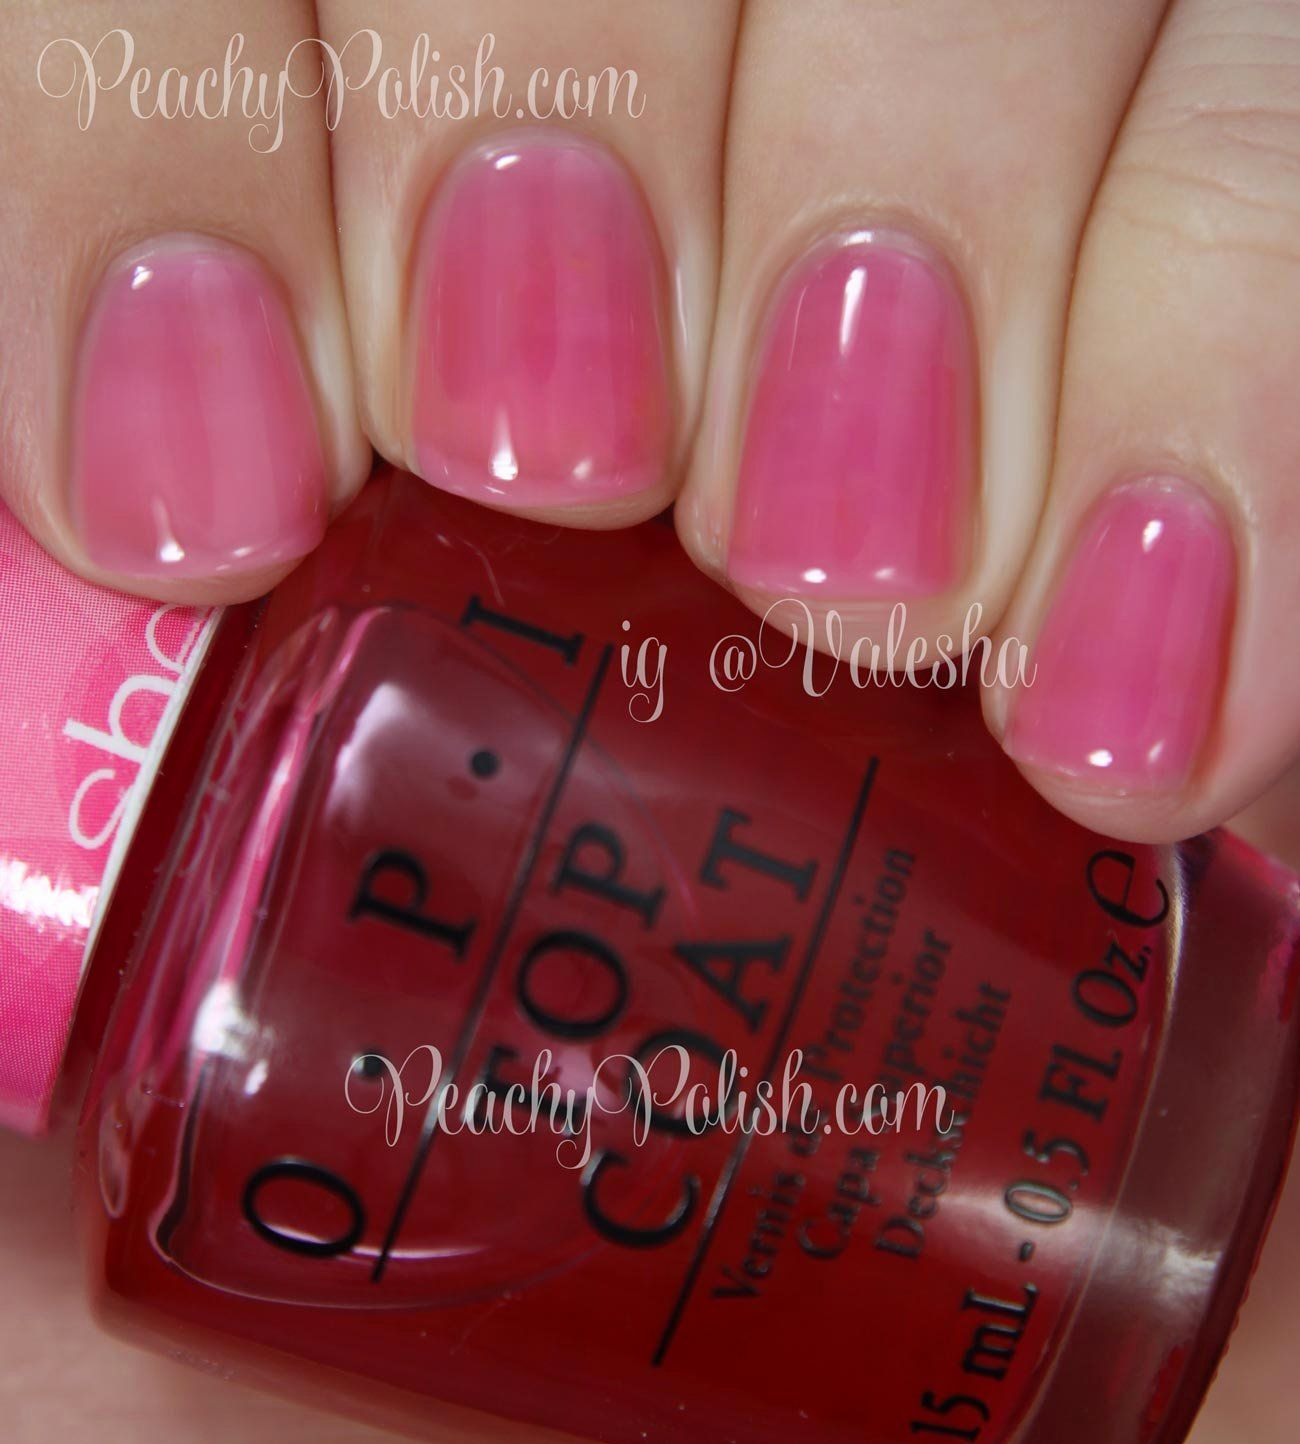 Pink Tint Nail Polish Lovely Opi Spring 2014 Sheer Tints Collection Swatches & R…